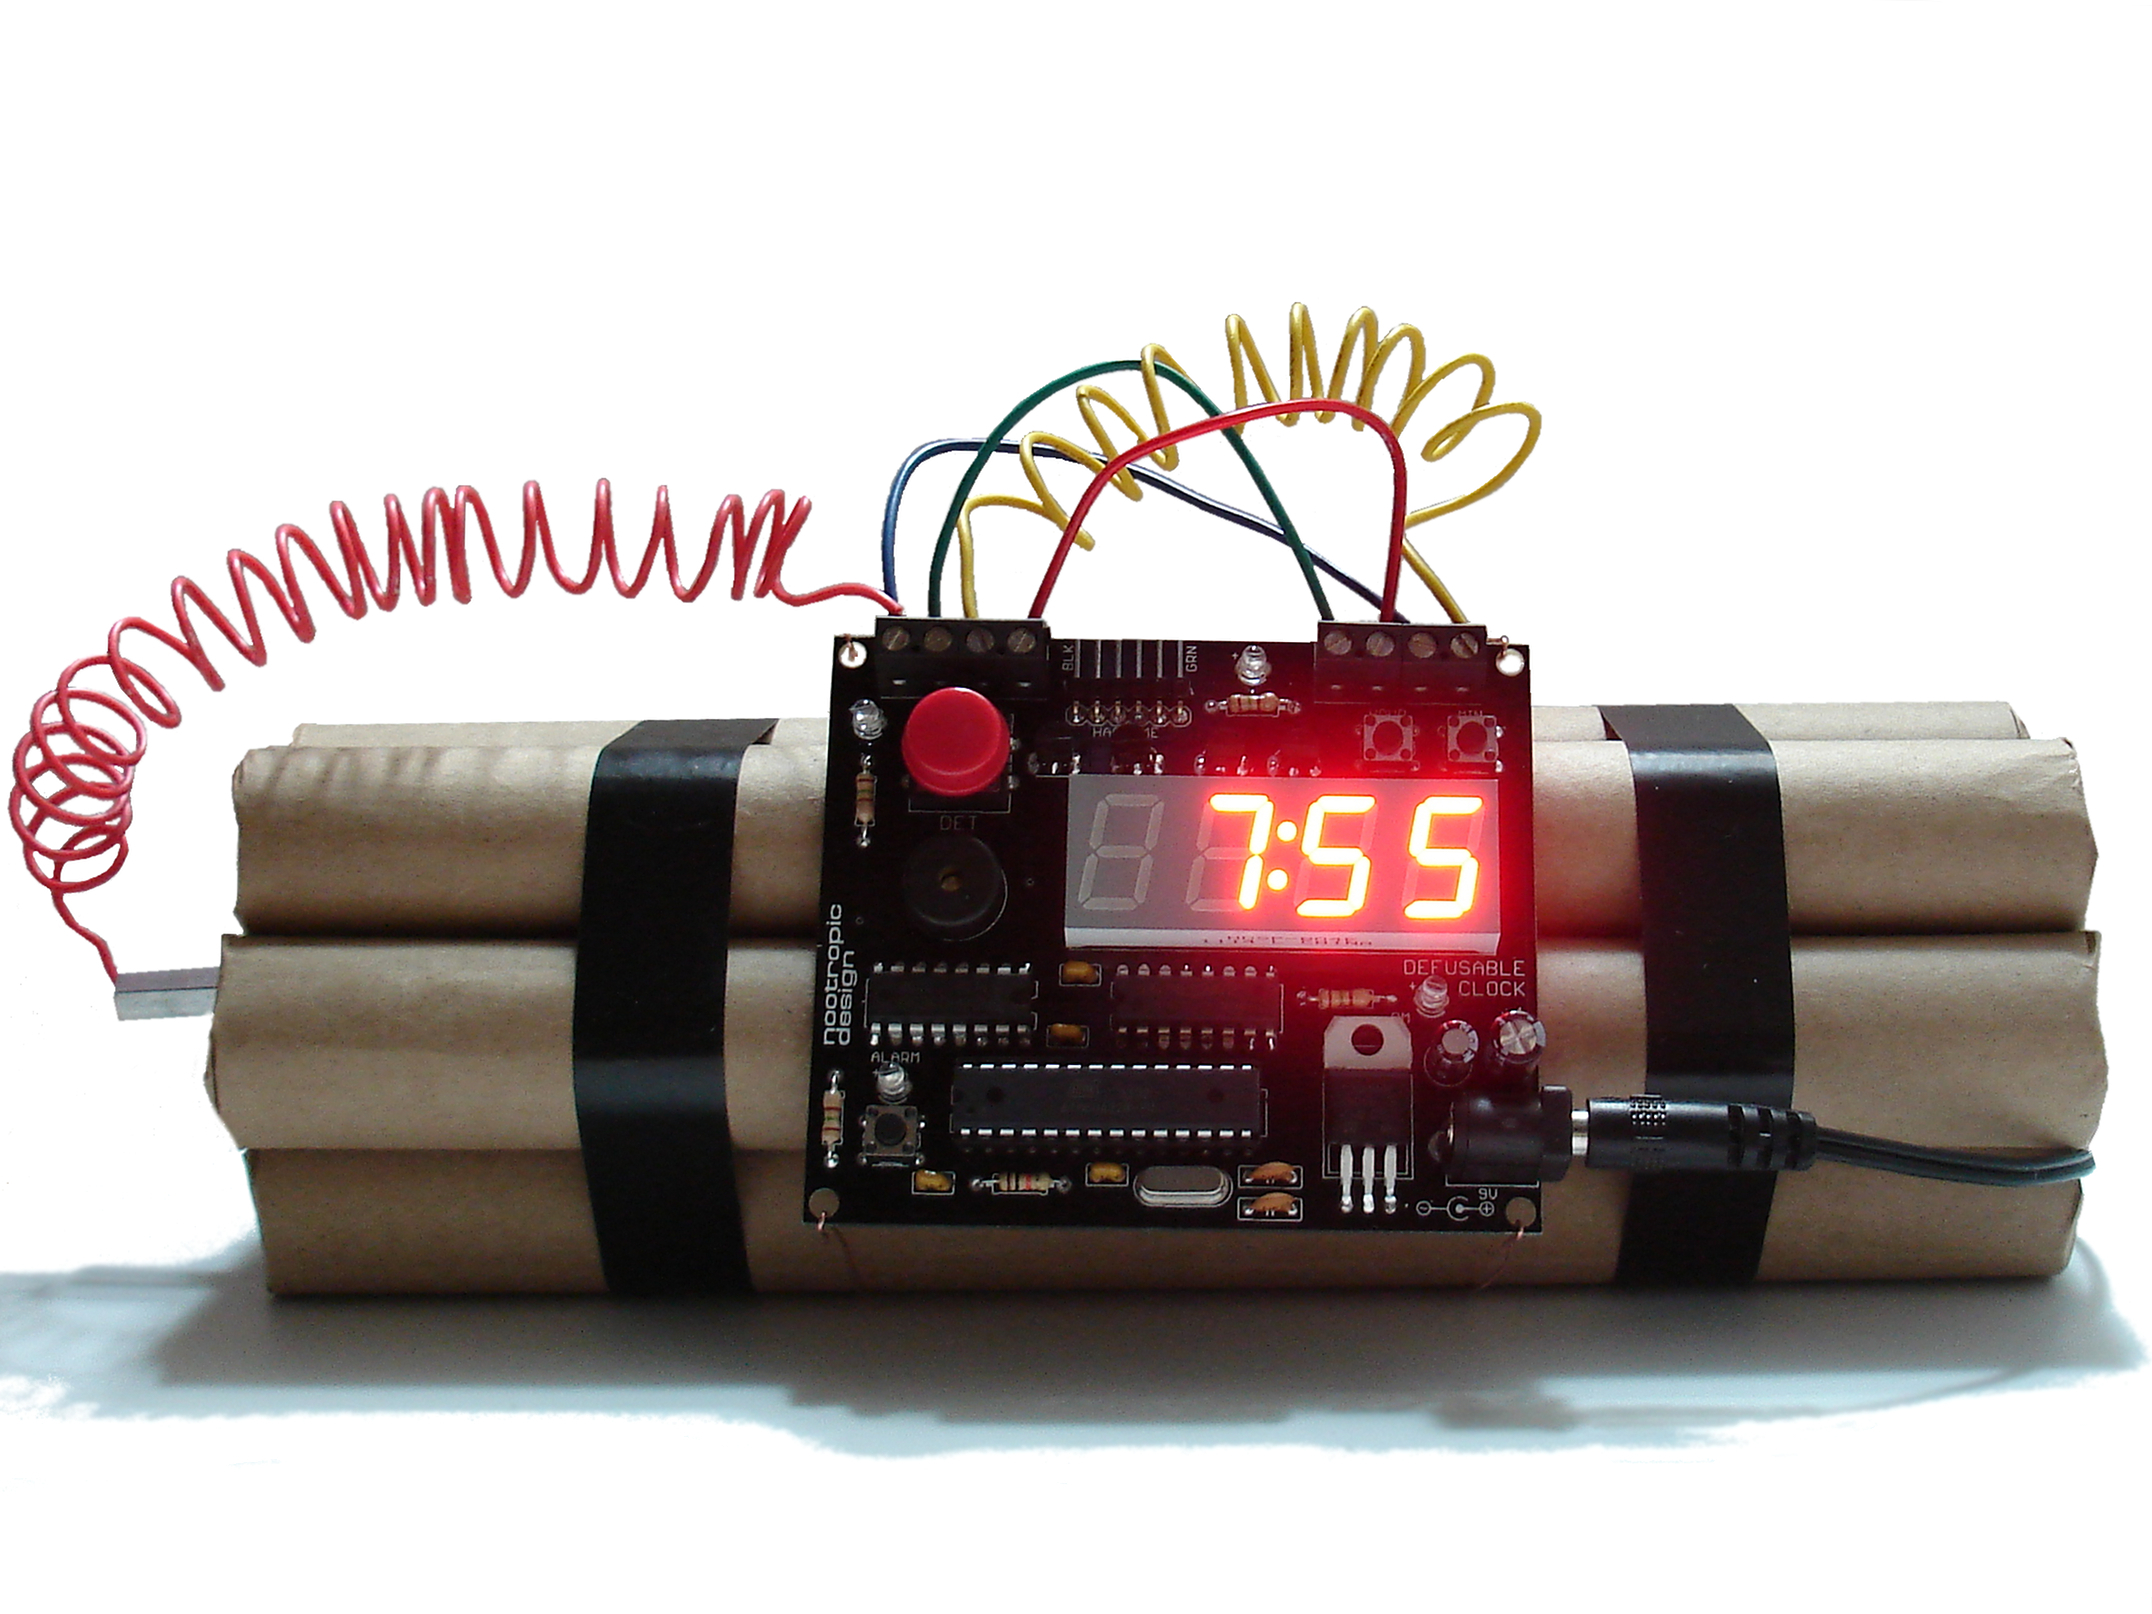 Project Lab Digital Clock Circuit Electronics Forum Circuits Projects And I Thought It Would Be Fun To Build An Alarm That Looks Just Like The Type Of Bomb We Always See In Hollywood Movies